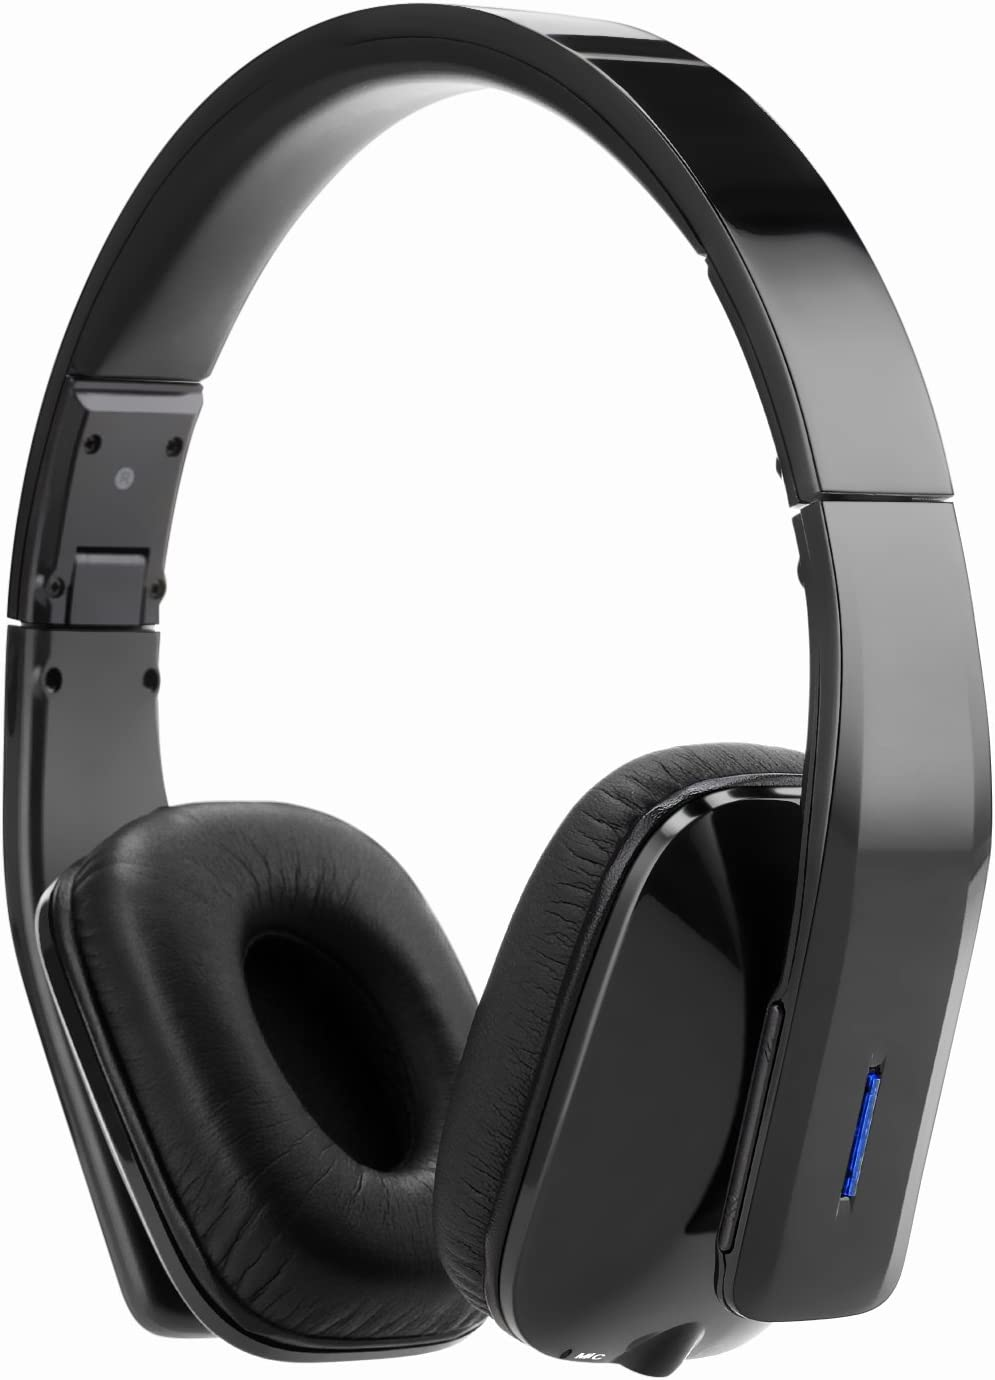 Whitelabel Bassone Bluetooth 4.0 Over Ear Headphones, Wireless Stereo Headsets Earphones, Built in Mic Hands-Free Calling, 3.5mm Audio Input, Wireless or Wired